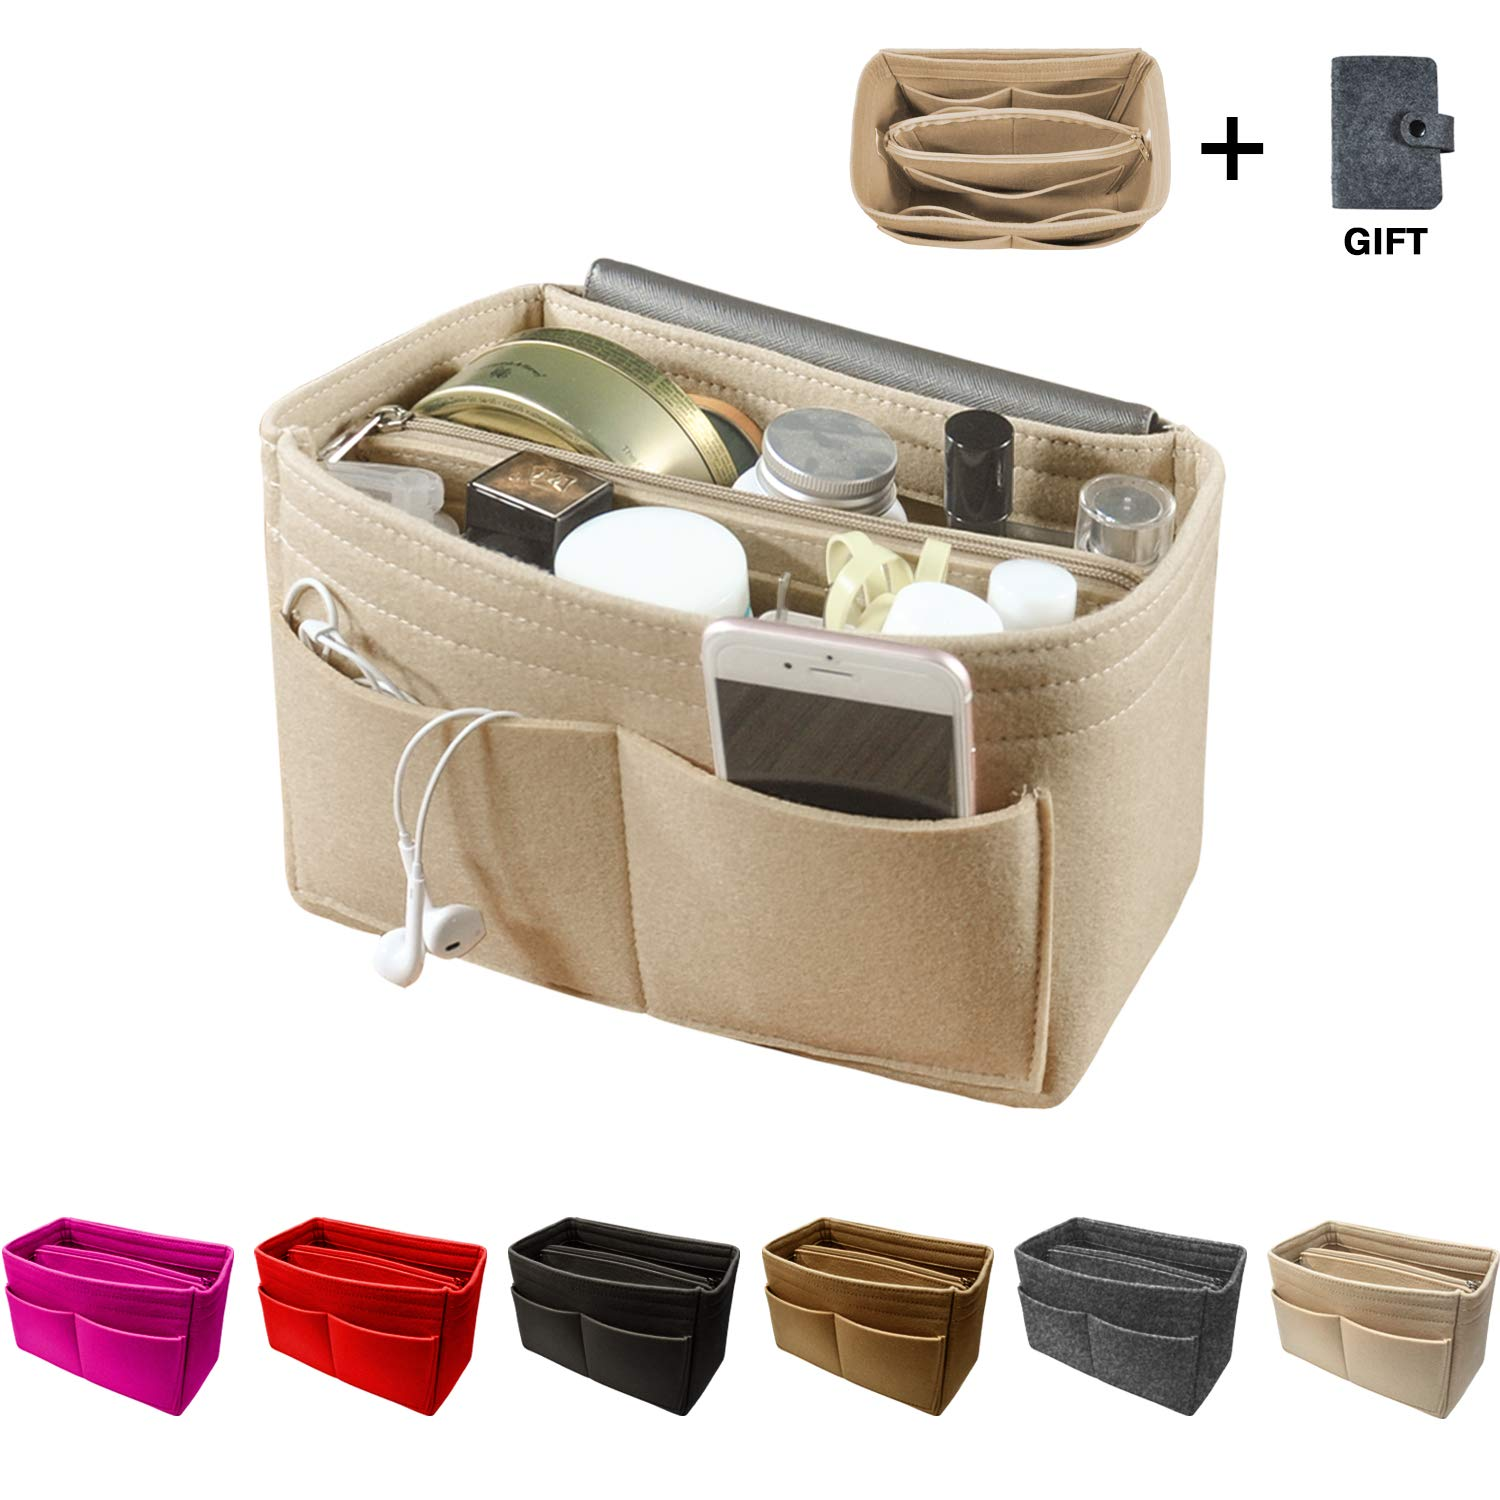 OMYSTYLE FASHION Purse Organizer Insert, Handbag & Tote Organizer, Perfect for Speedy Neverfull and More,Beige Large